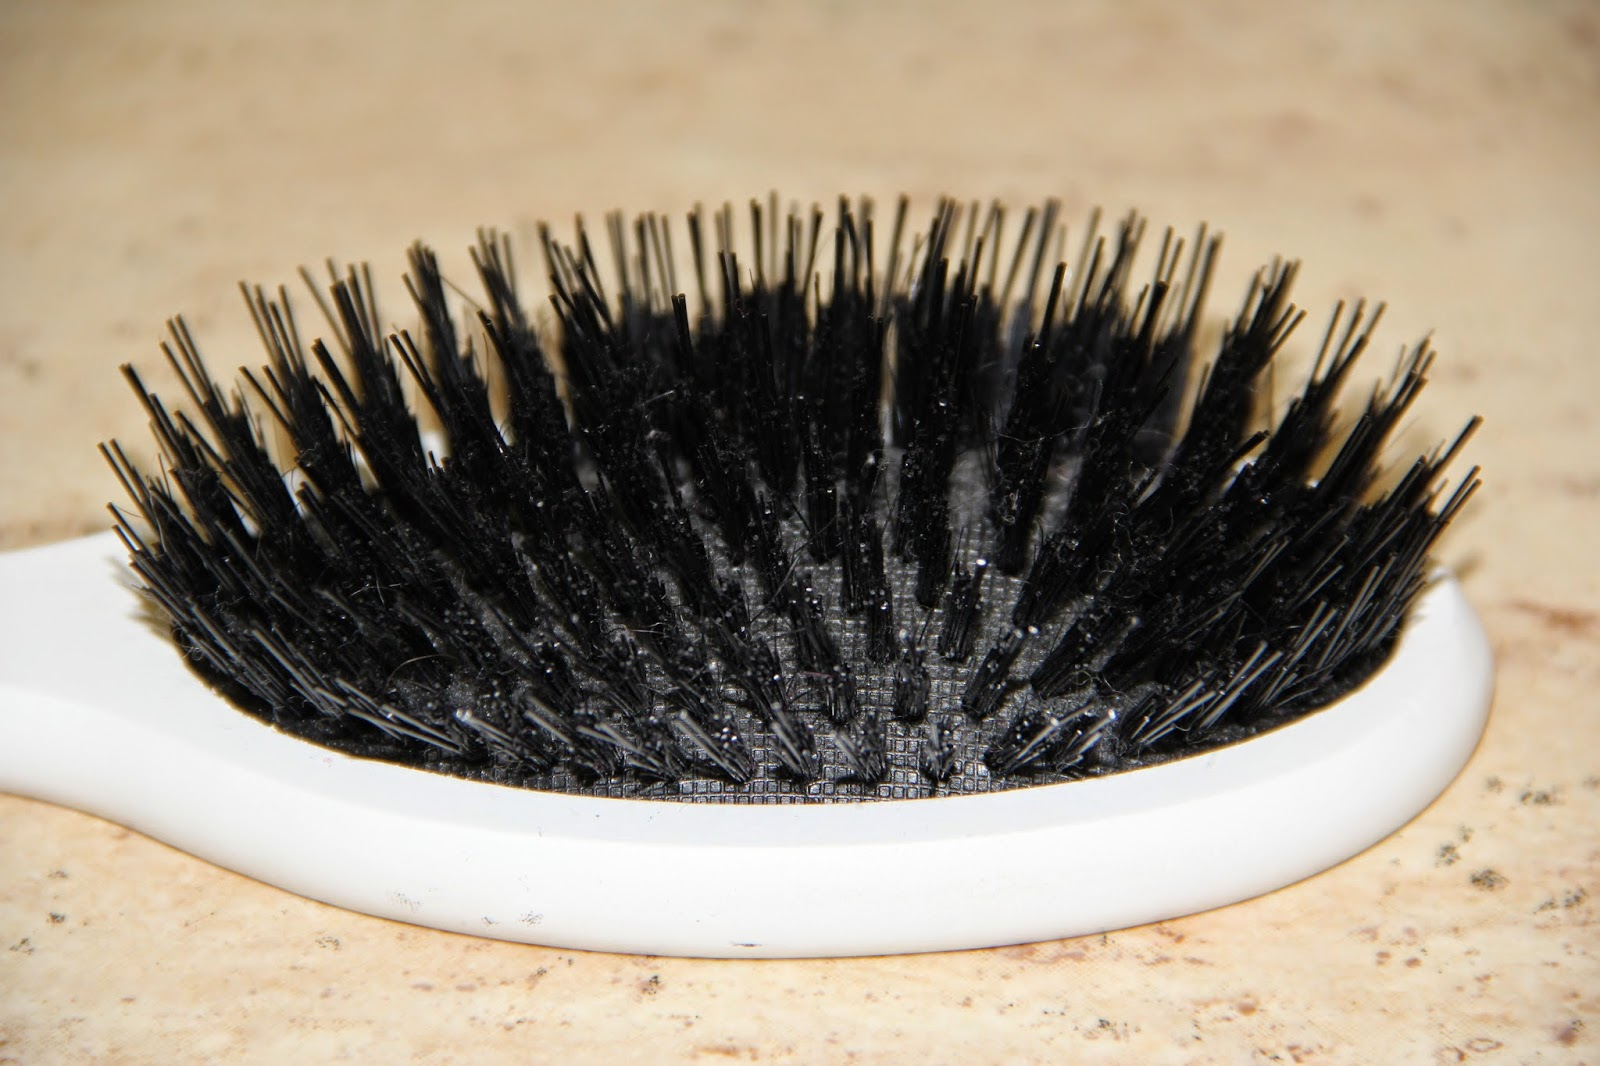 Julia Potaychuk Balmain Hair Brush Review